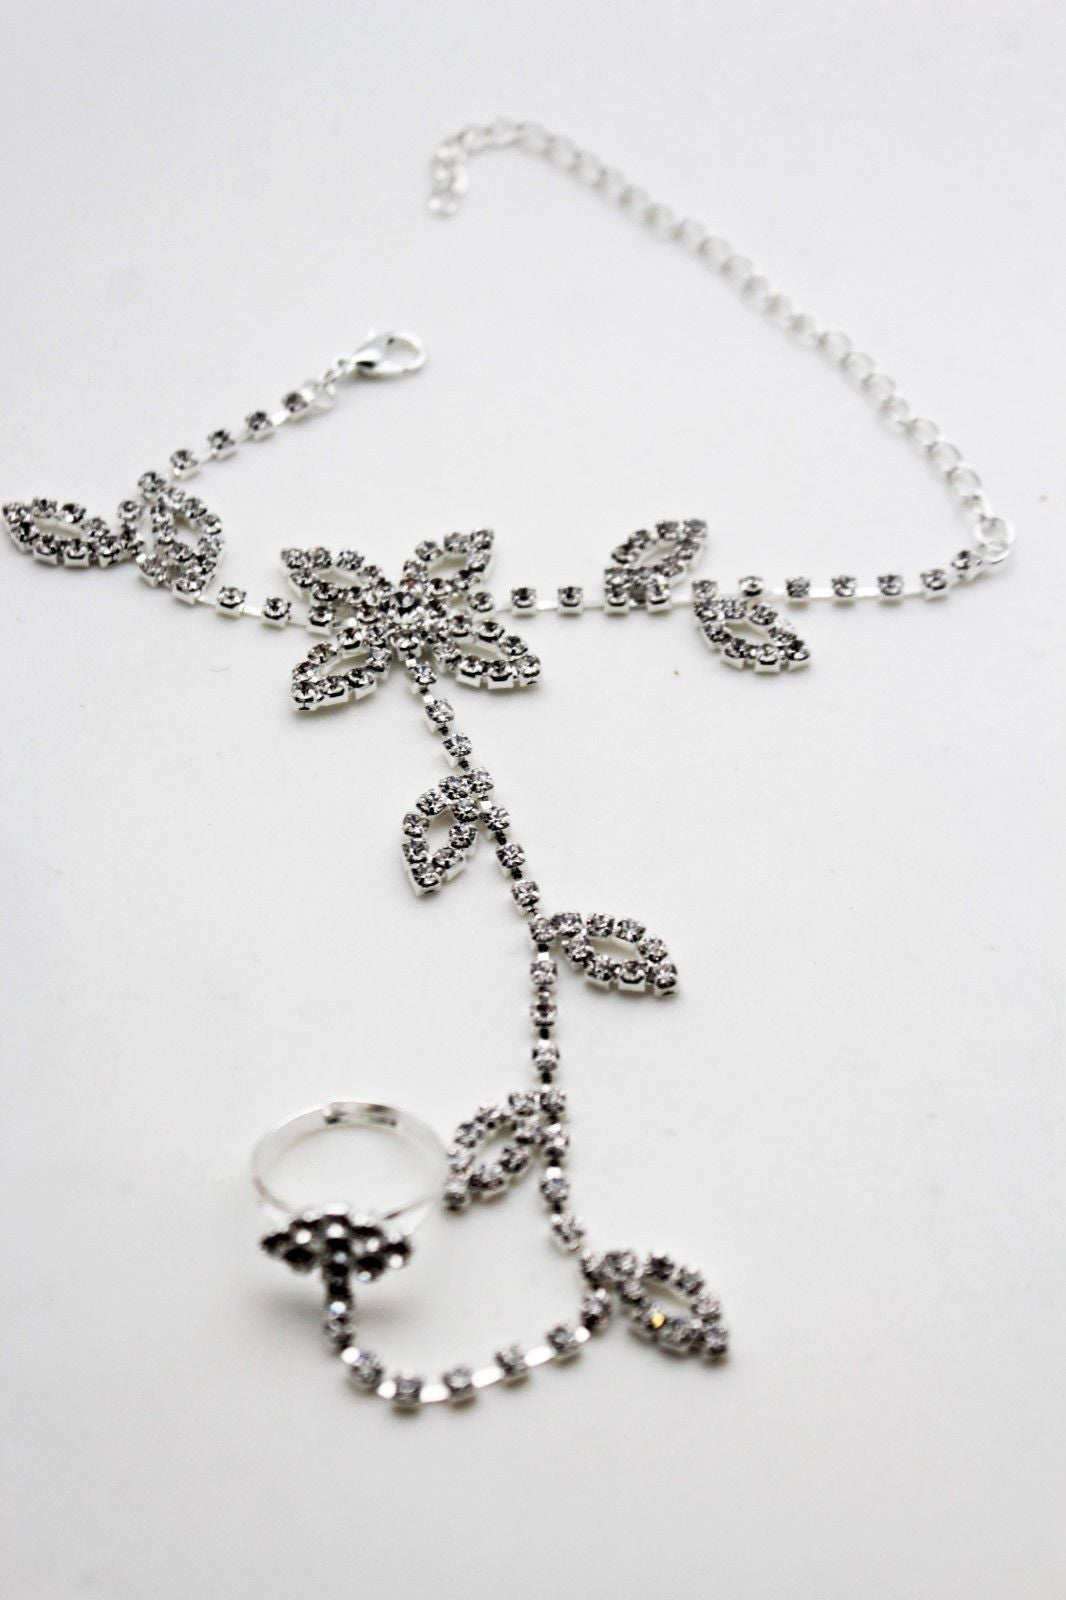 metal flower pendant find it necklace cut die wear